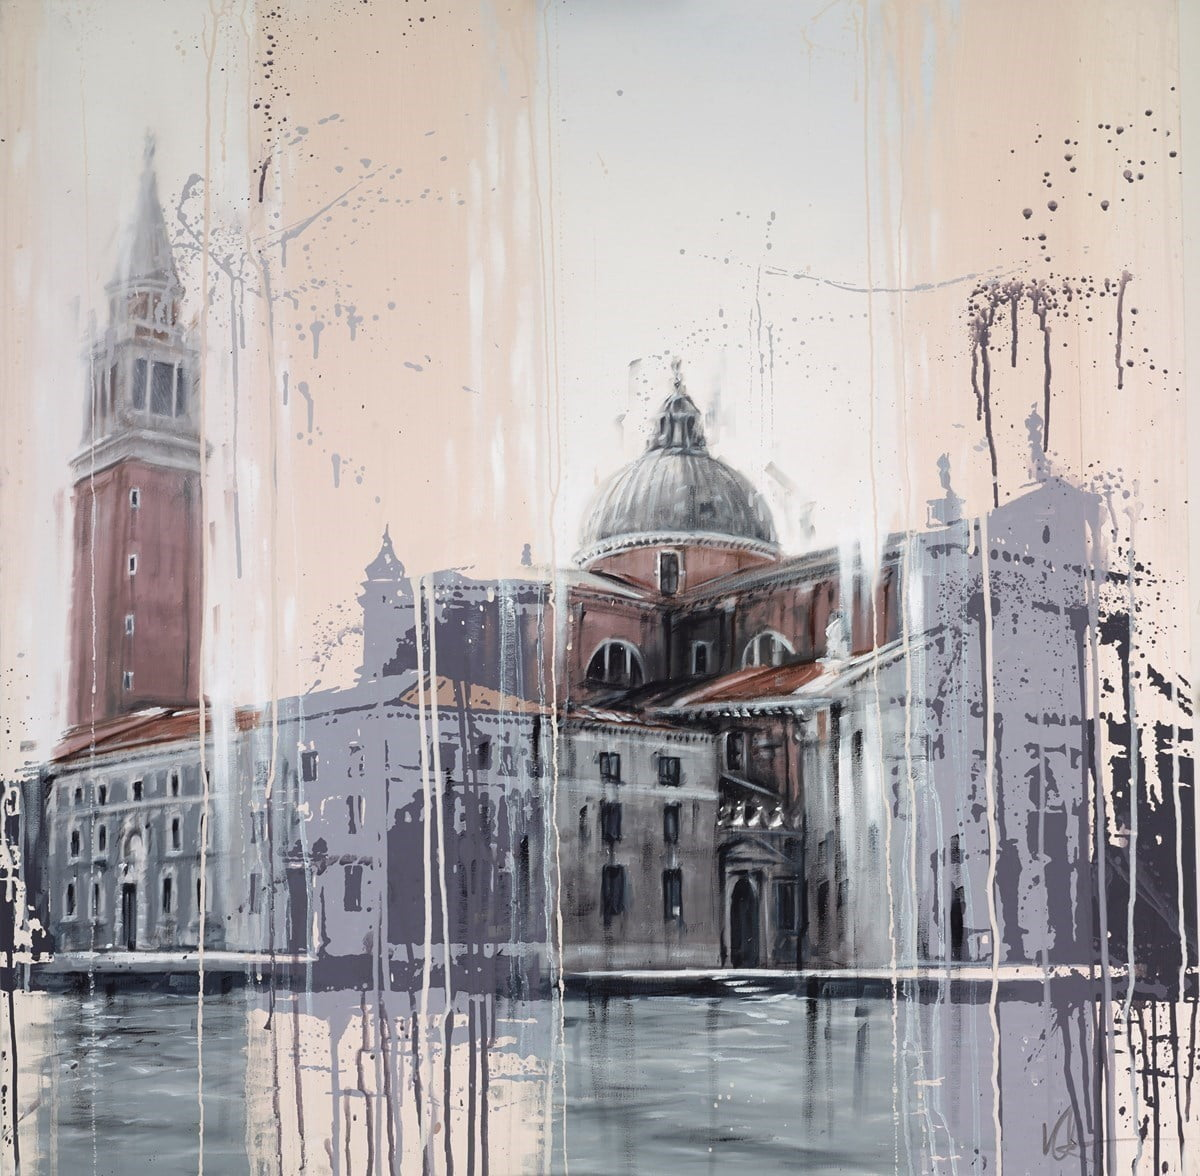 A View of St Marks Square, Venice ~ Kris Hardy